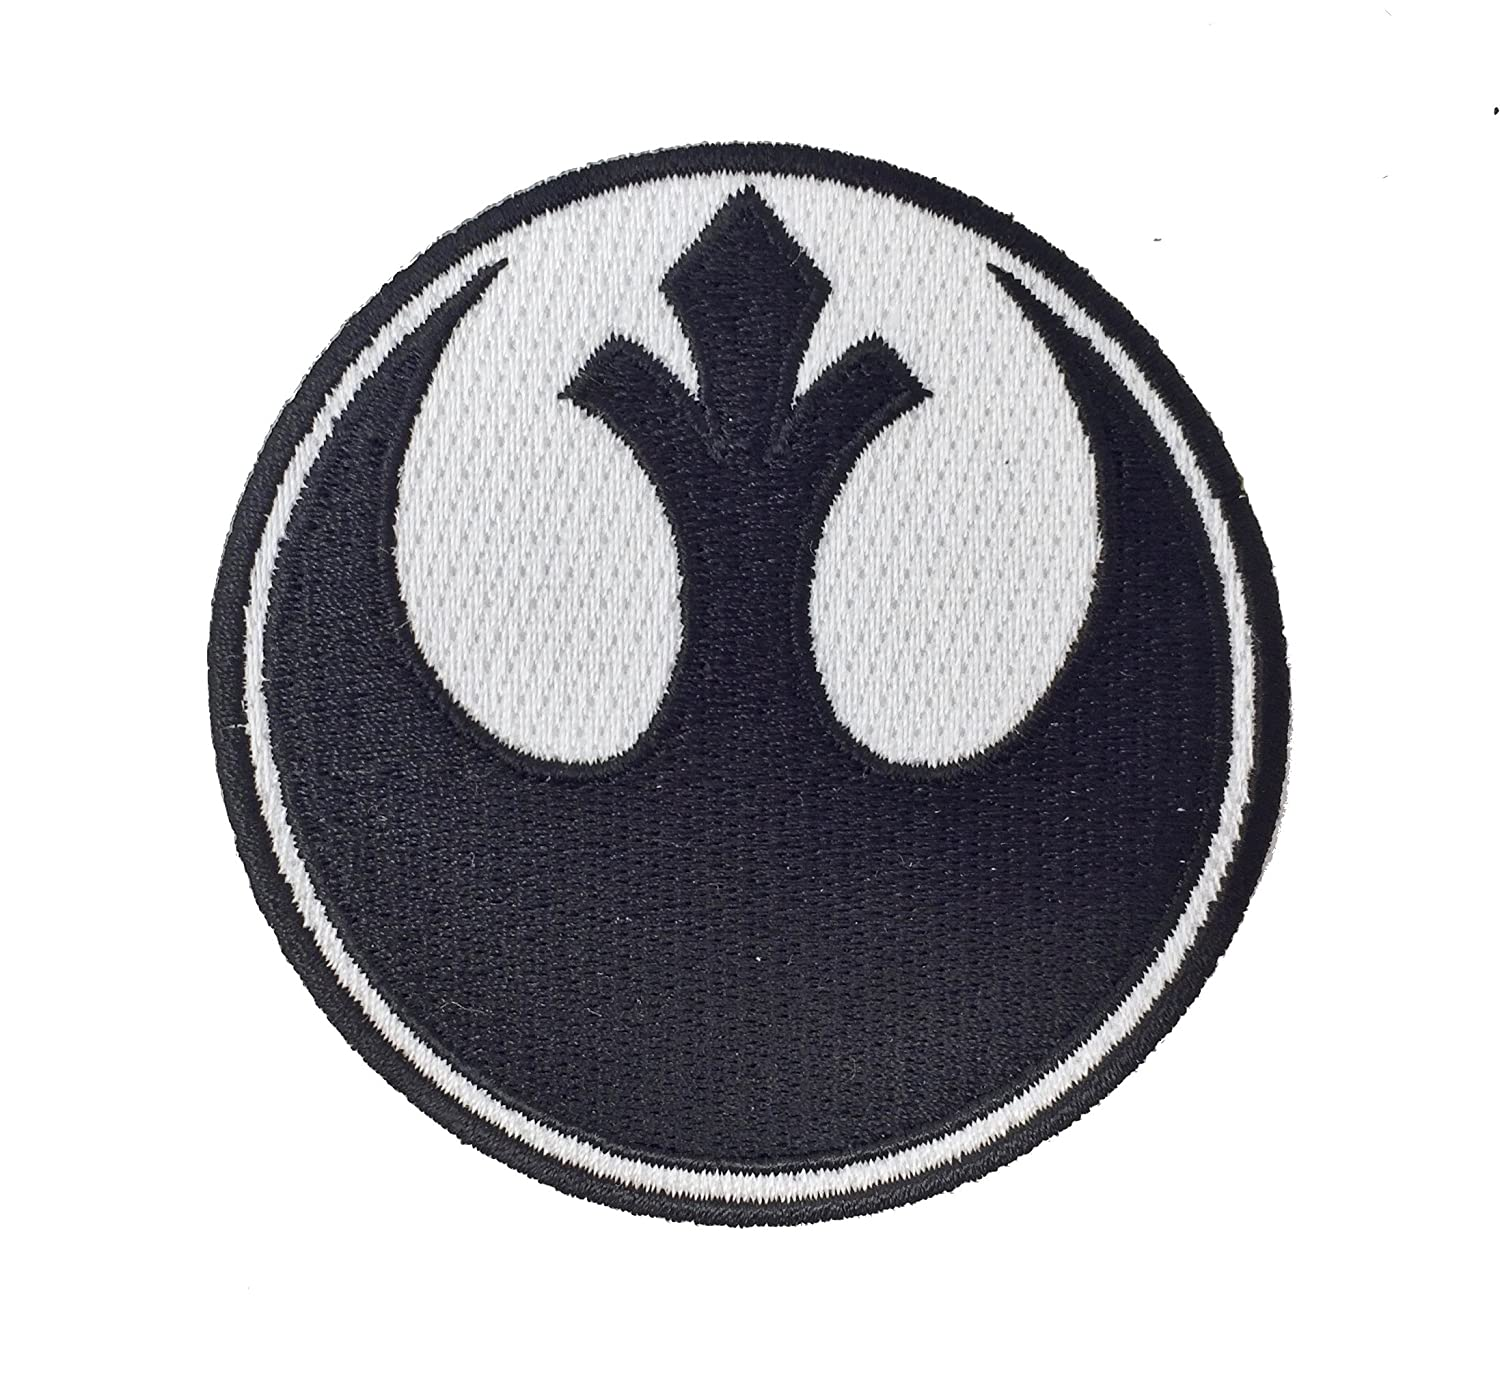 Super6props Star Wars Rebel Alliance Embroidered Iron on Patch Crew Uniform Patch for Cosplay, Costume and Fancy Dress 75mm x 75mm